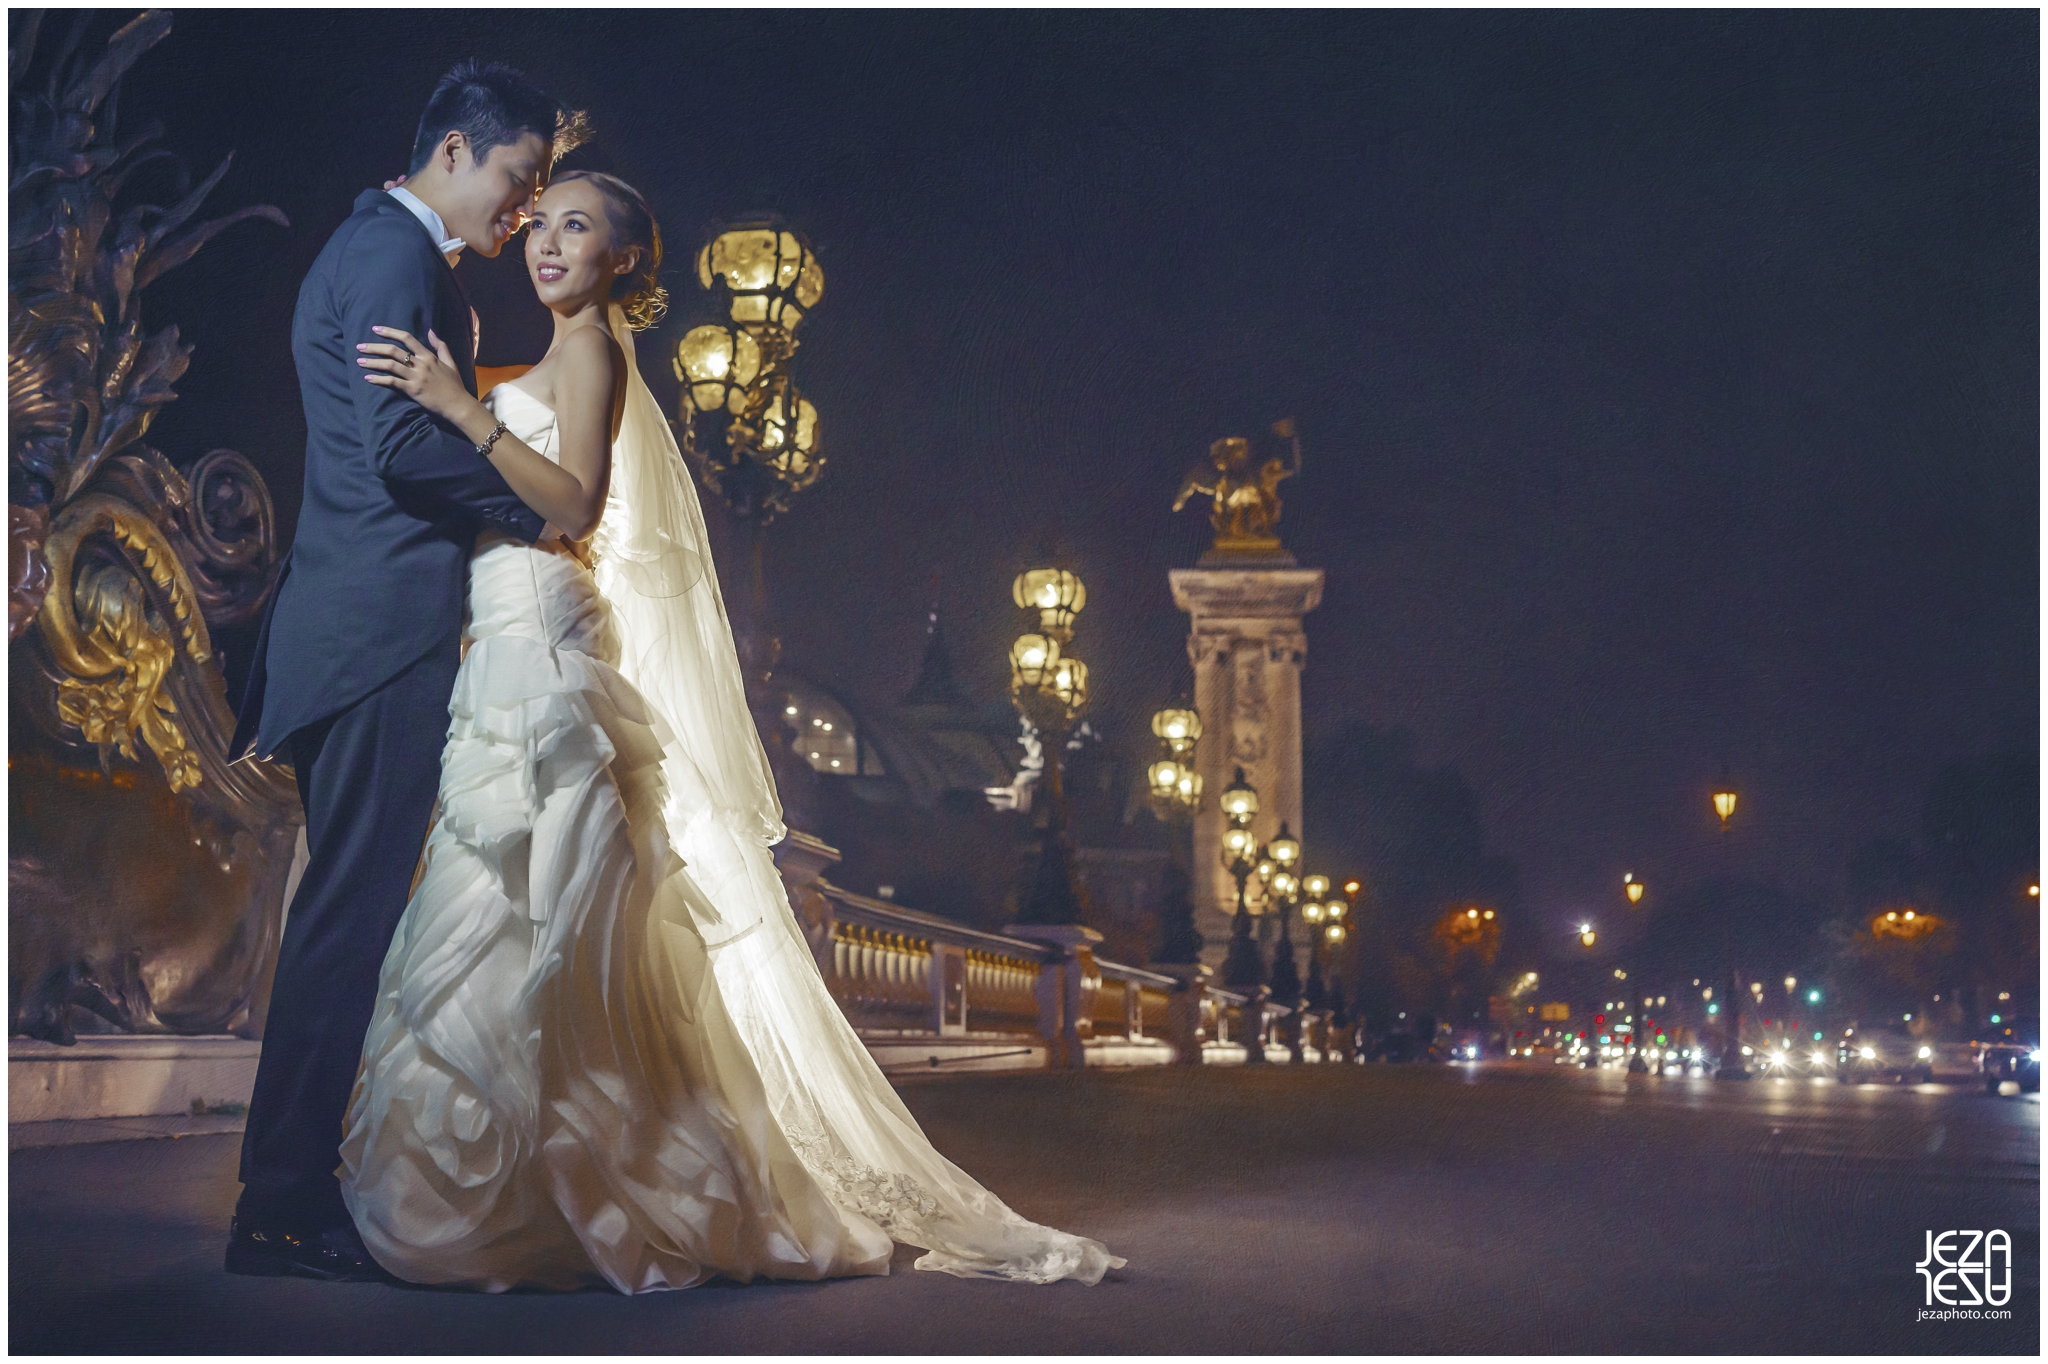 jeza Paris Pont Alexandre III pre-wedding photo